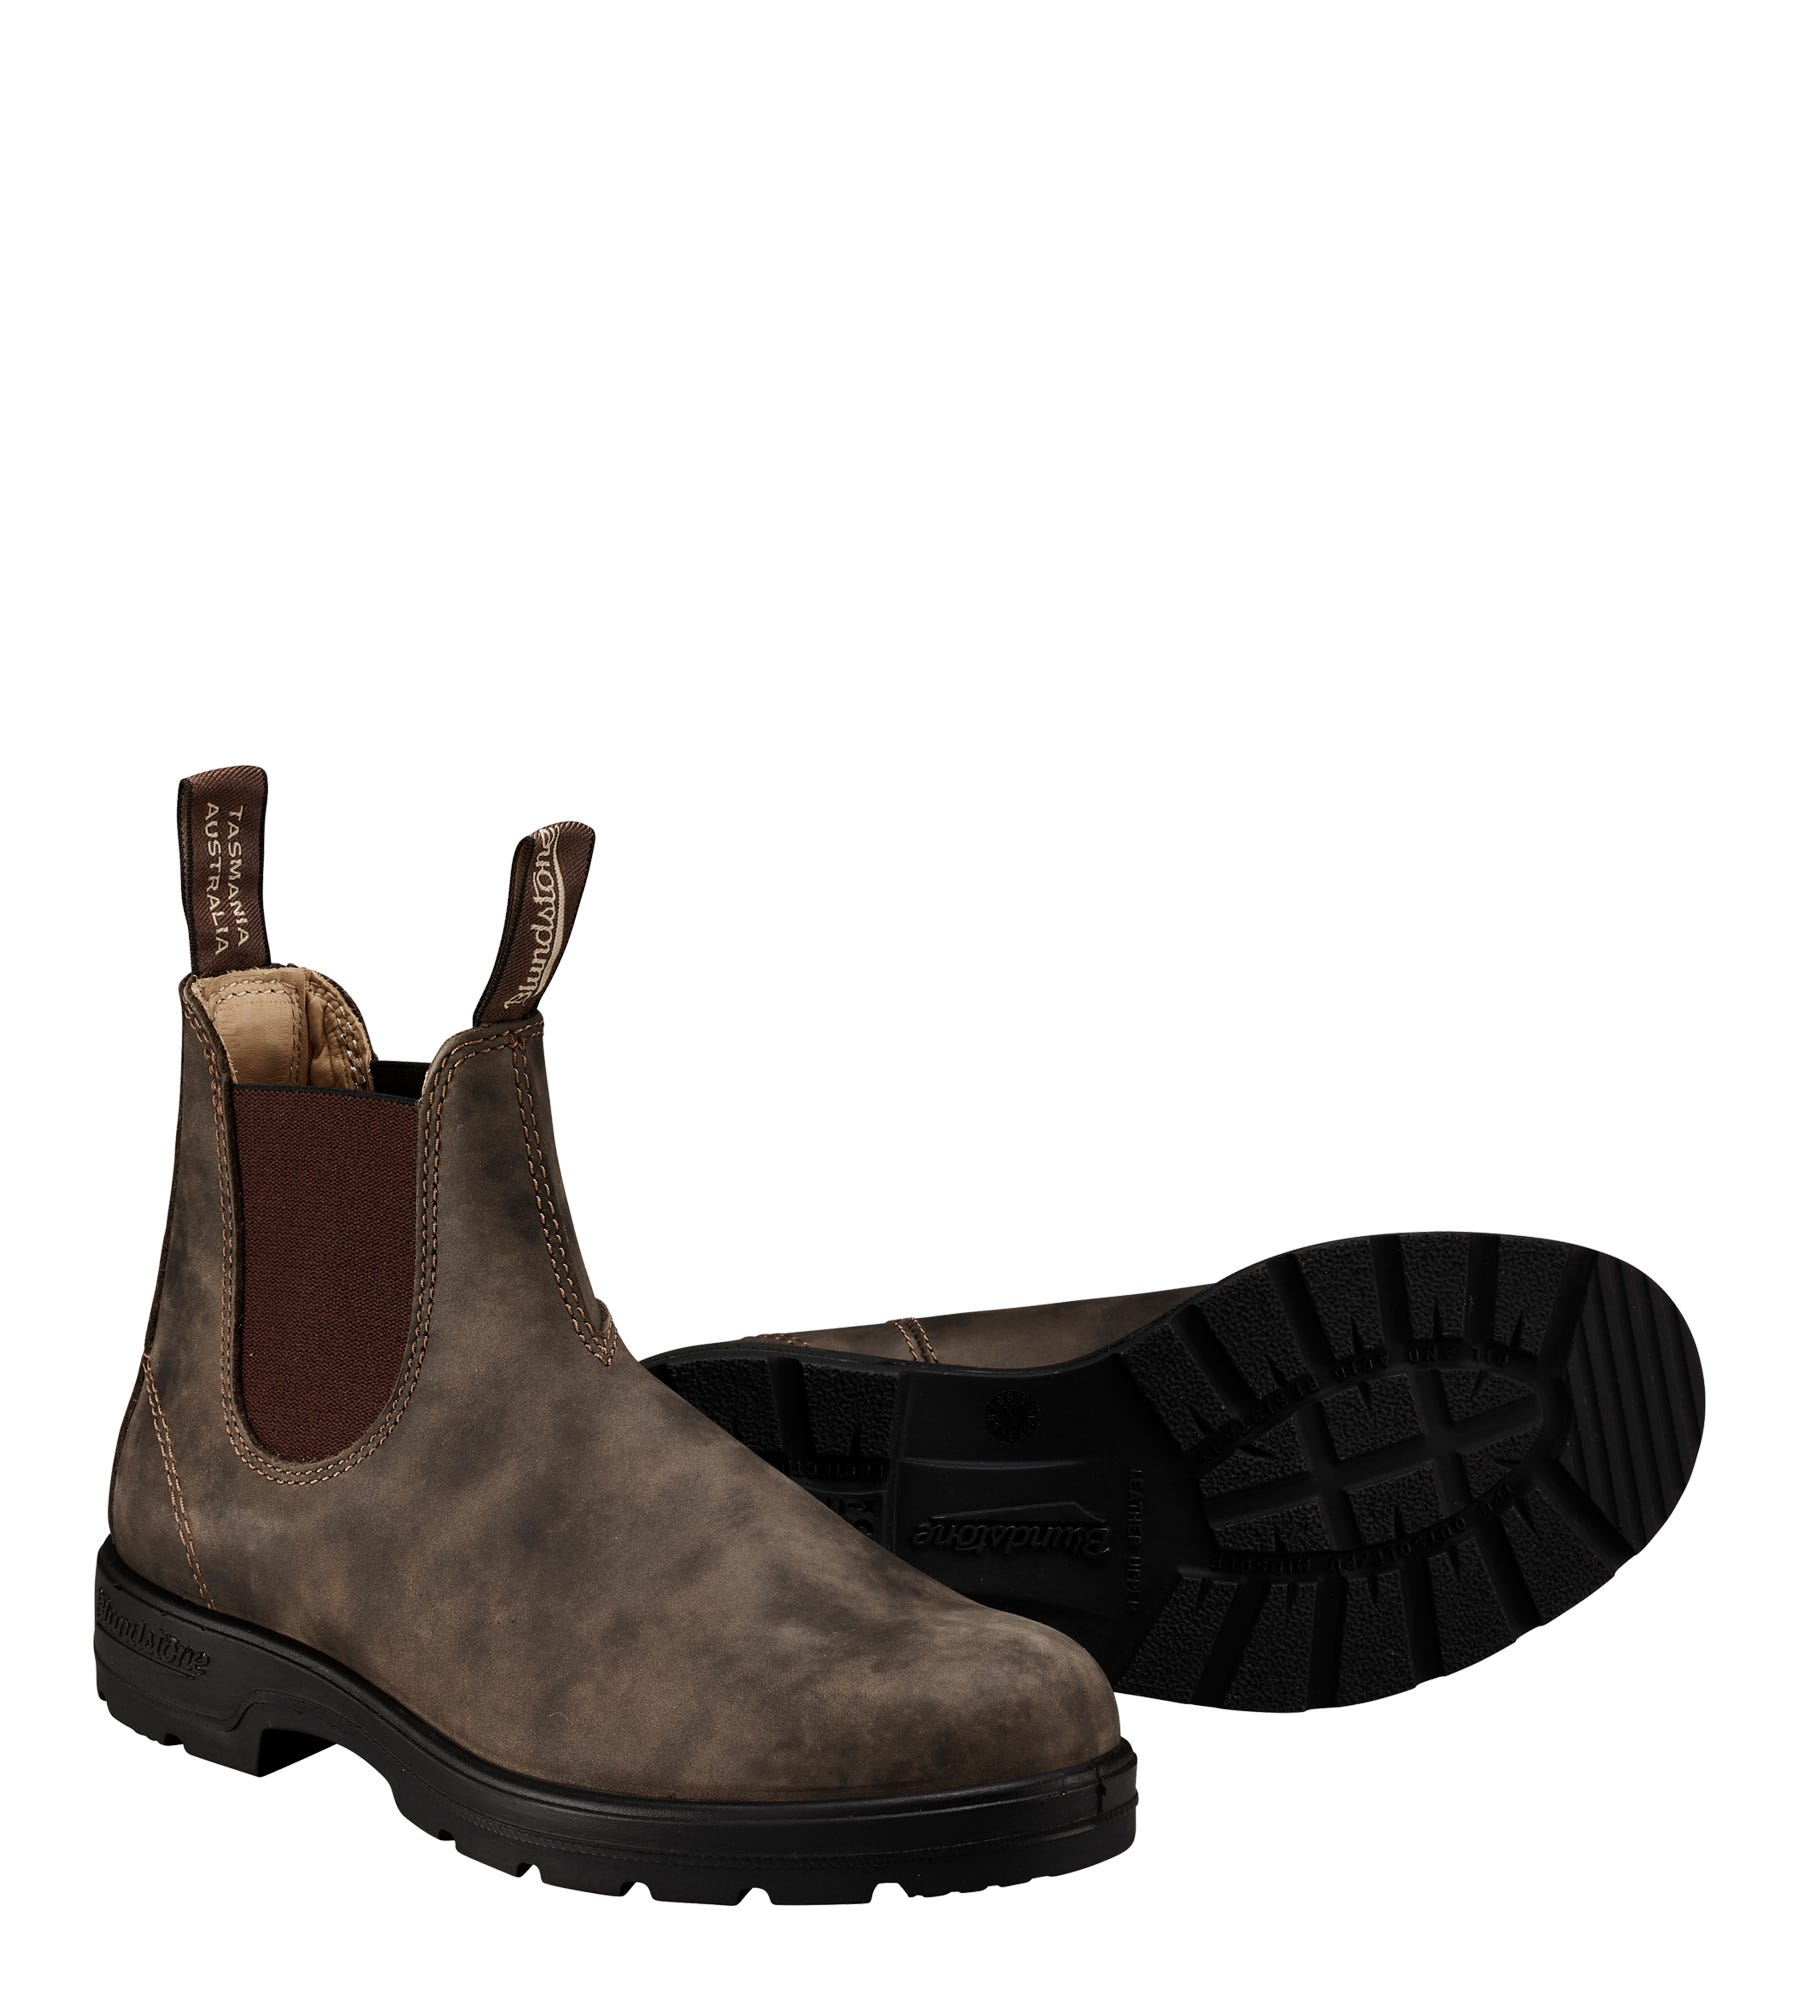 An image of Blundstone Boots #585-43 (9)